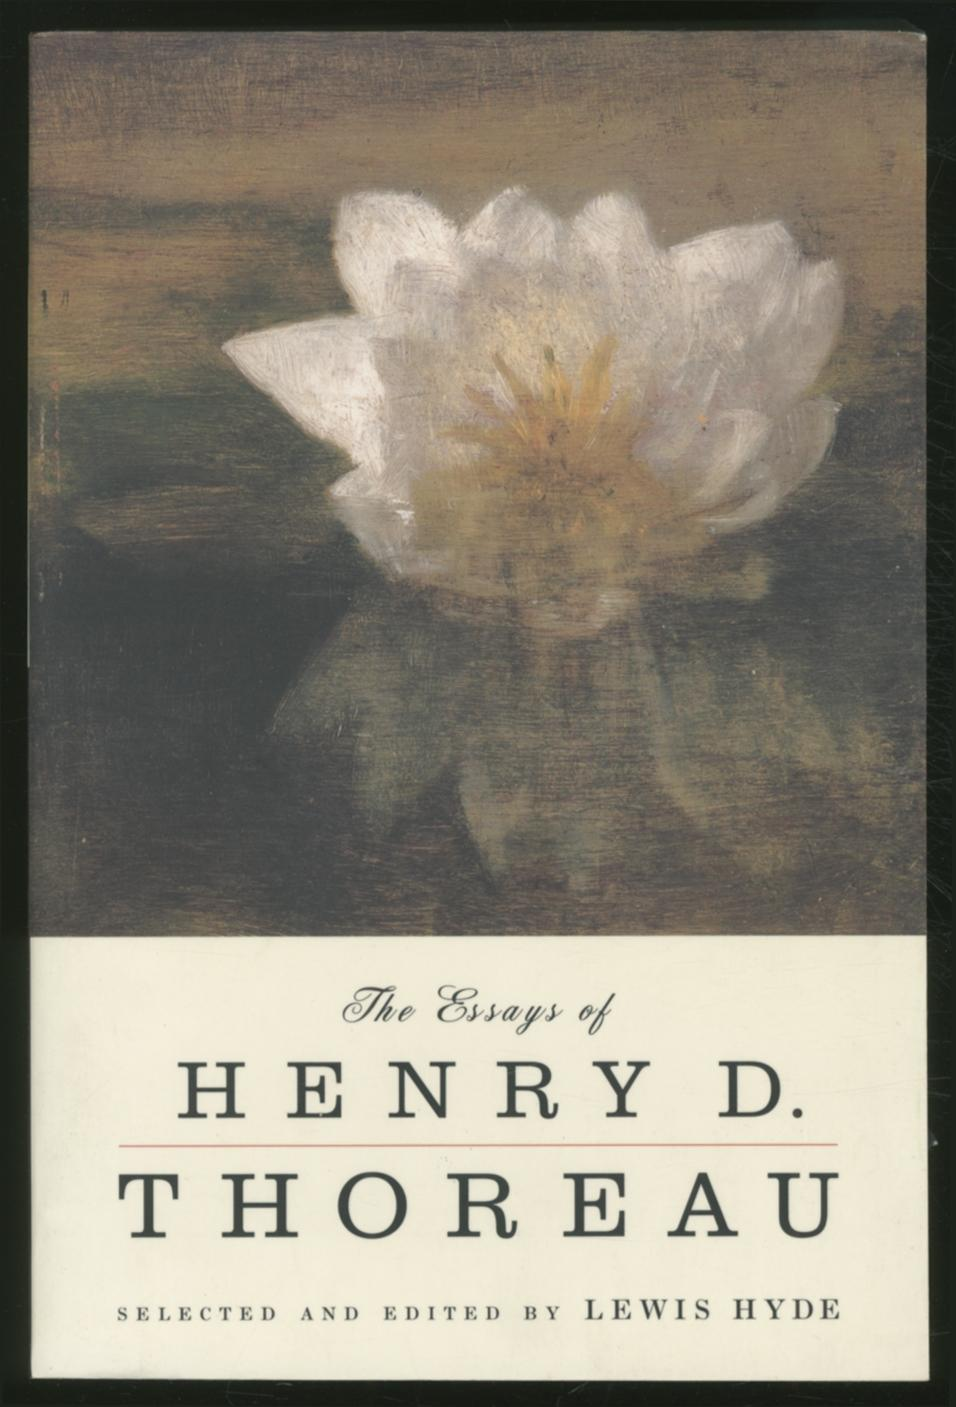 thoreau henry david essays